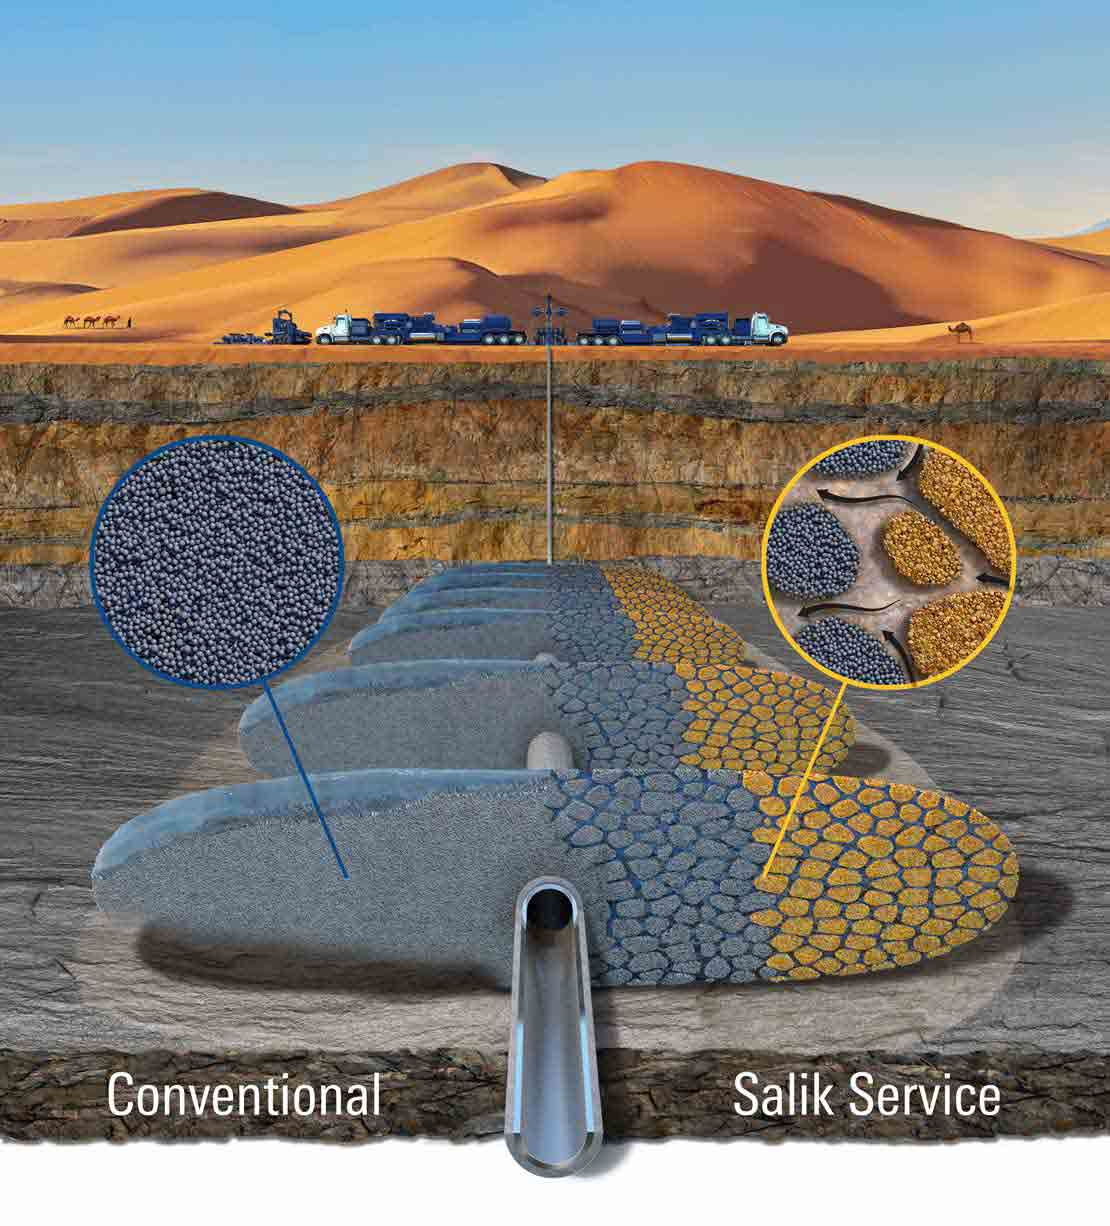 Salik service enables operators to replace more than 50% of the ceramic proppant normally required for a fracturing job with inexpensive, locally sourced sand.